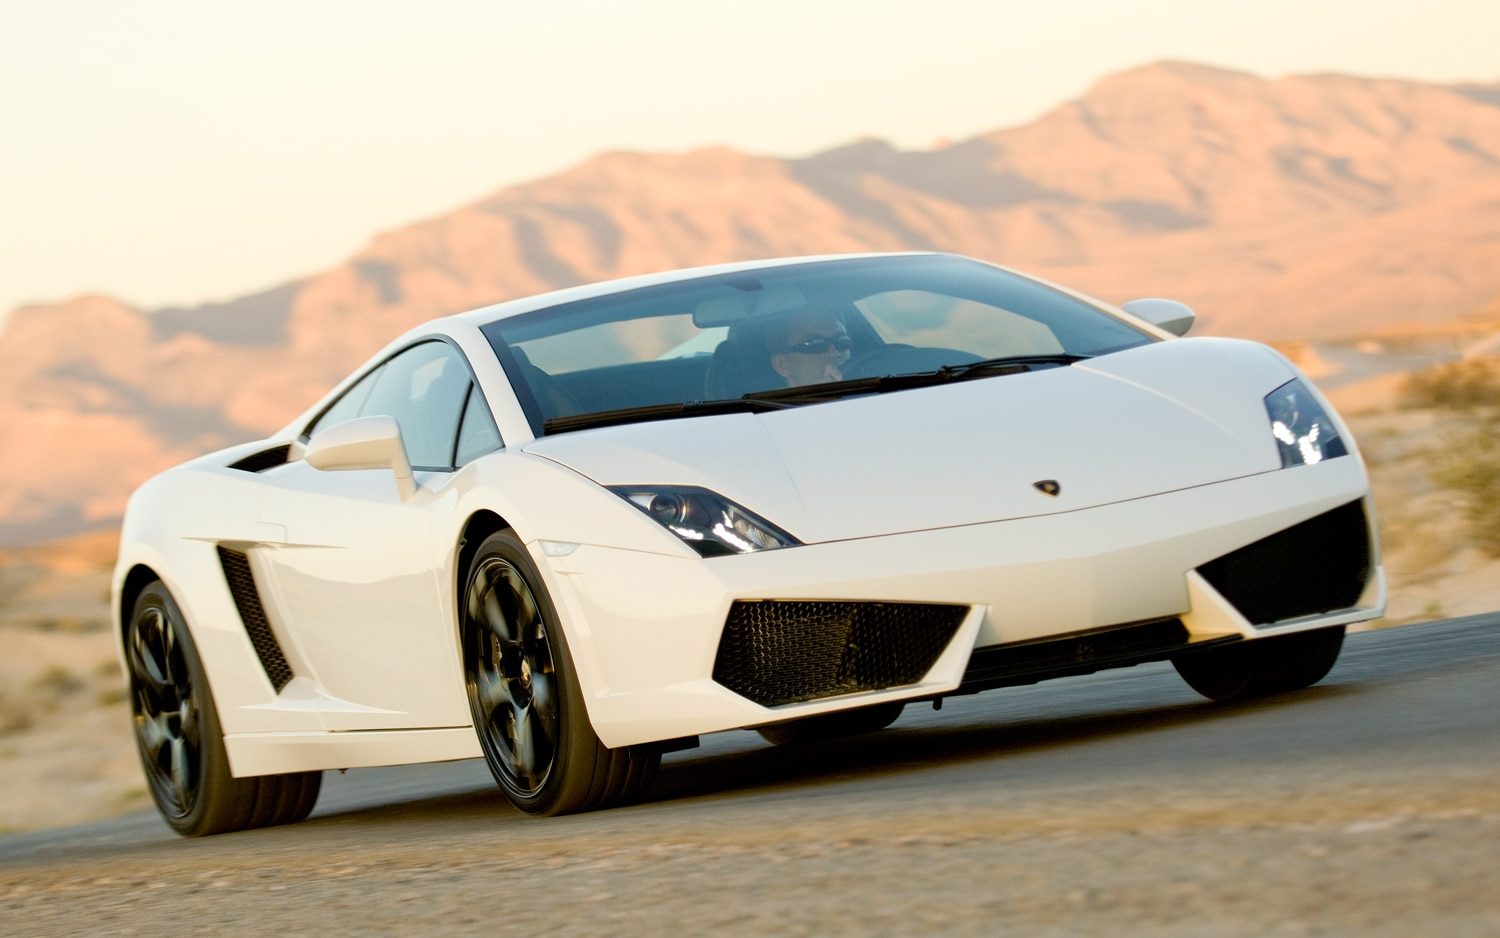 2012 Lamborghini Gallardo Lp560 4 Front Three Quarter